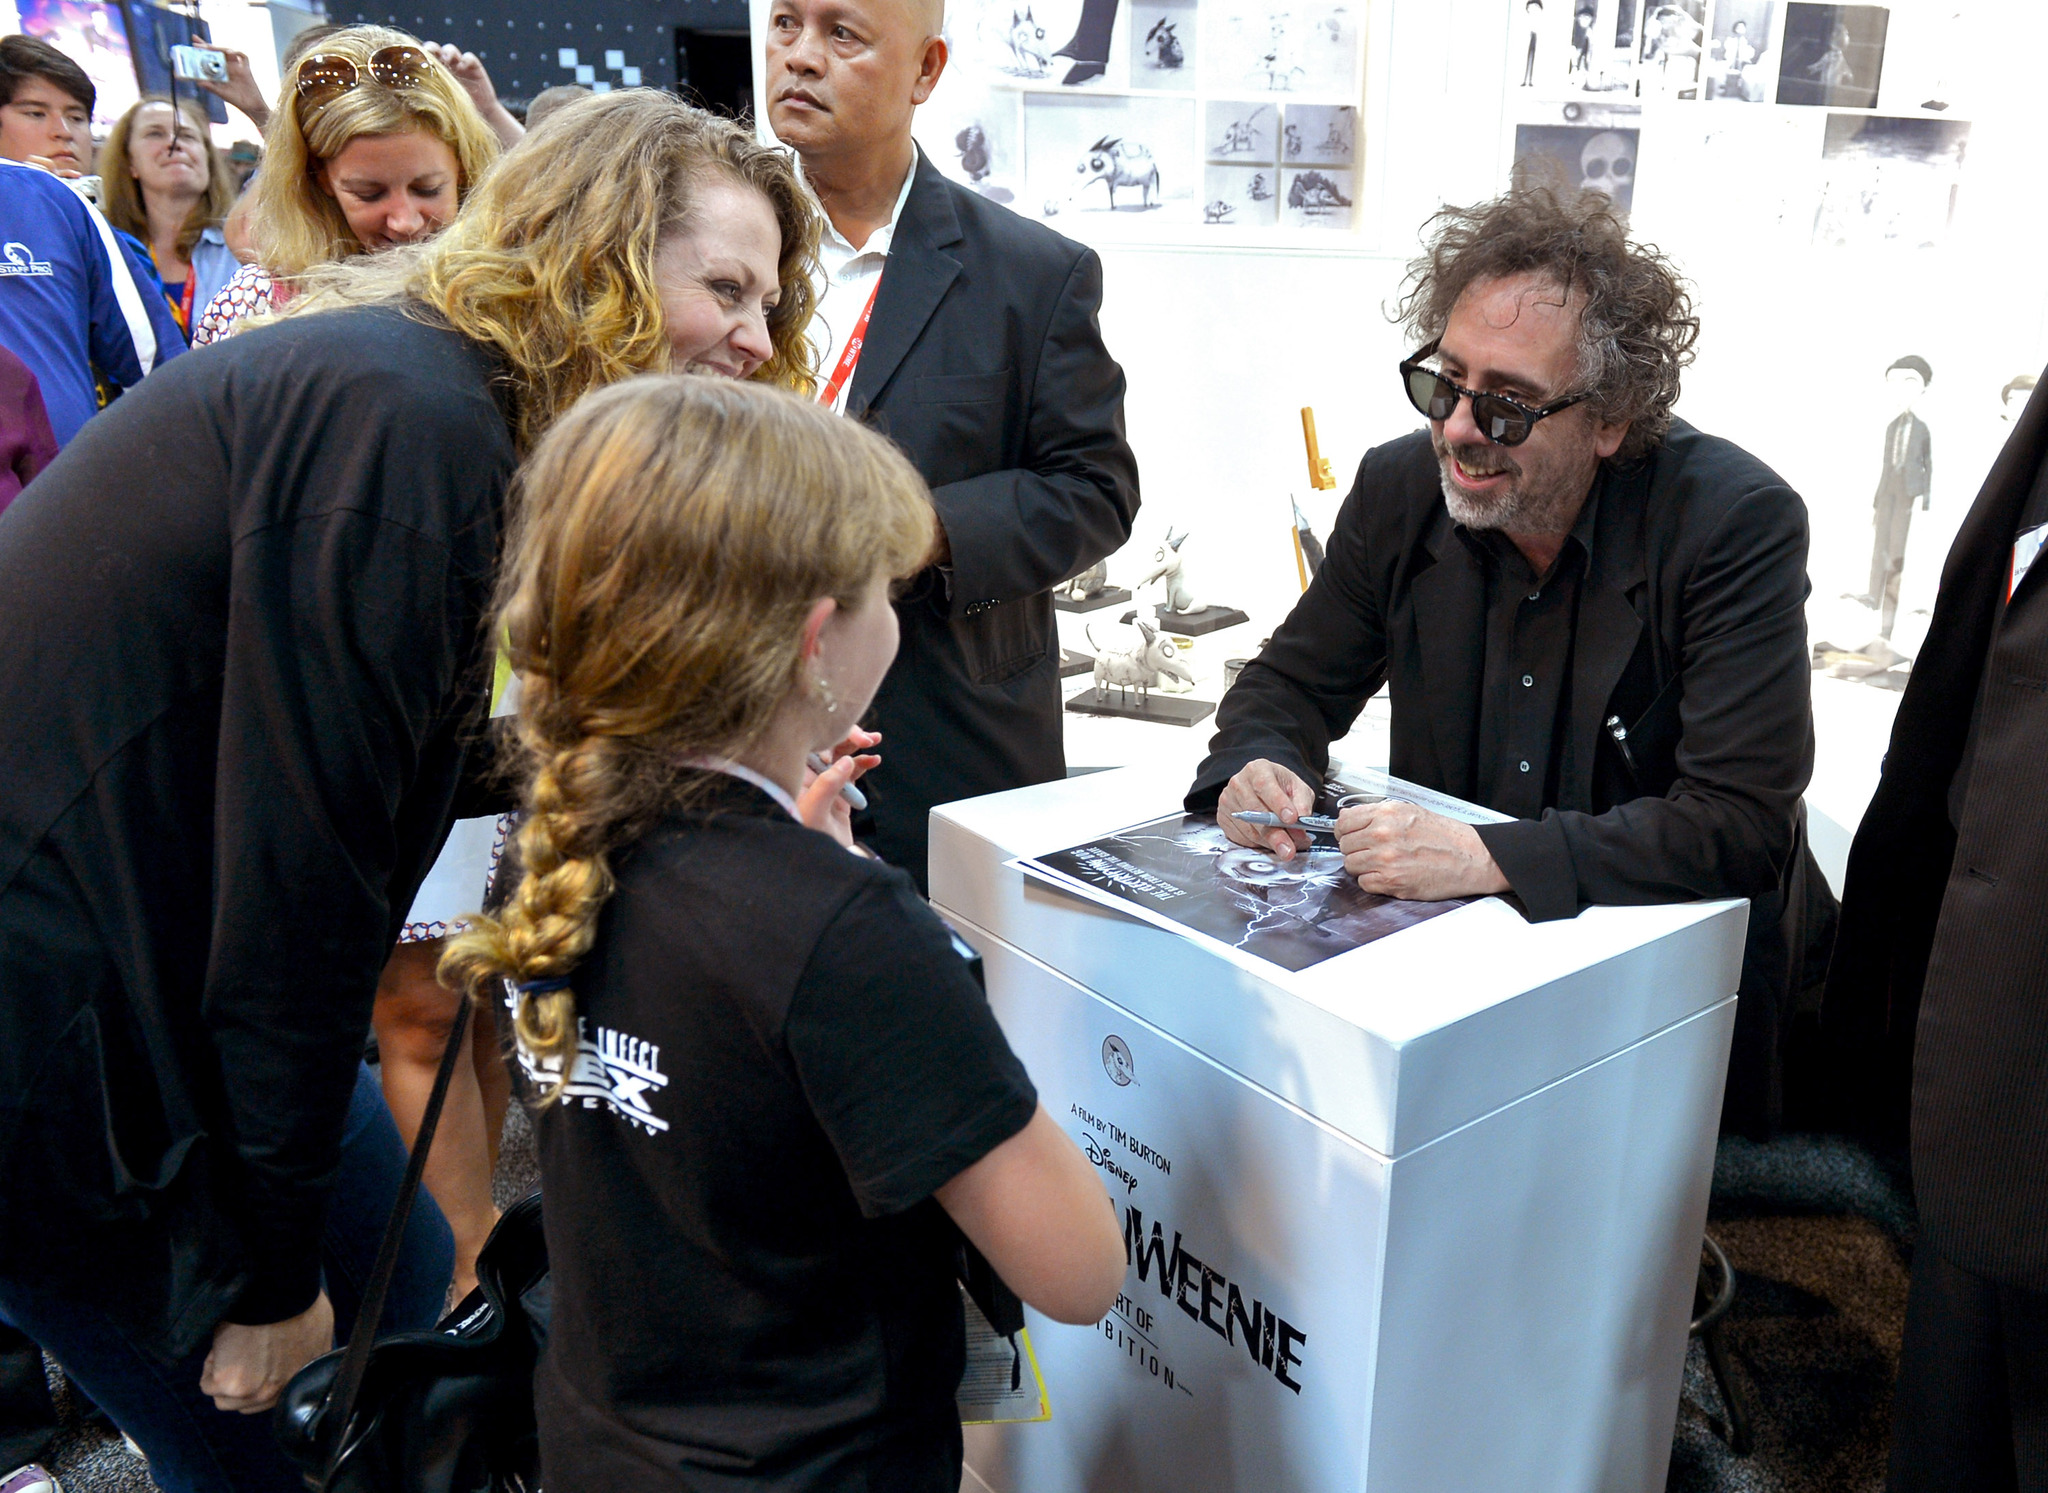 Tim Burton at an event for Frankenweenie (2012)